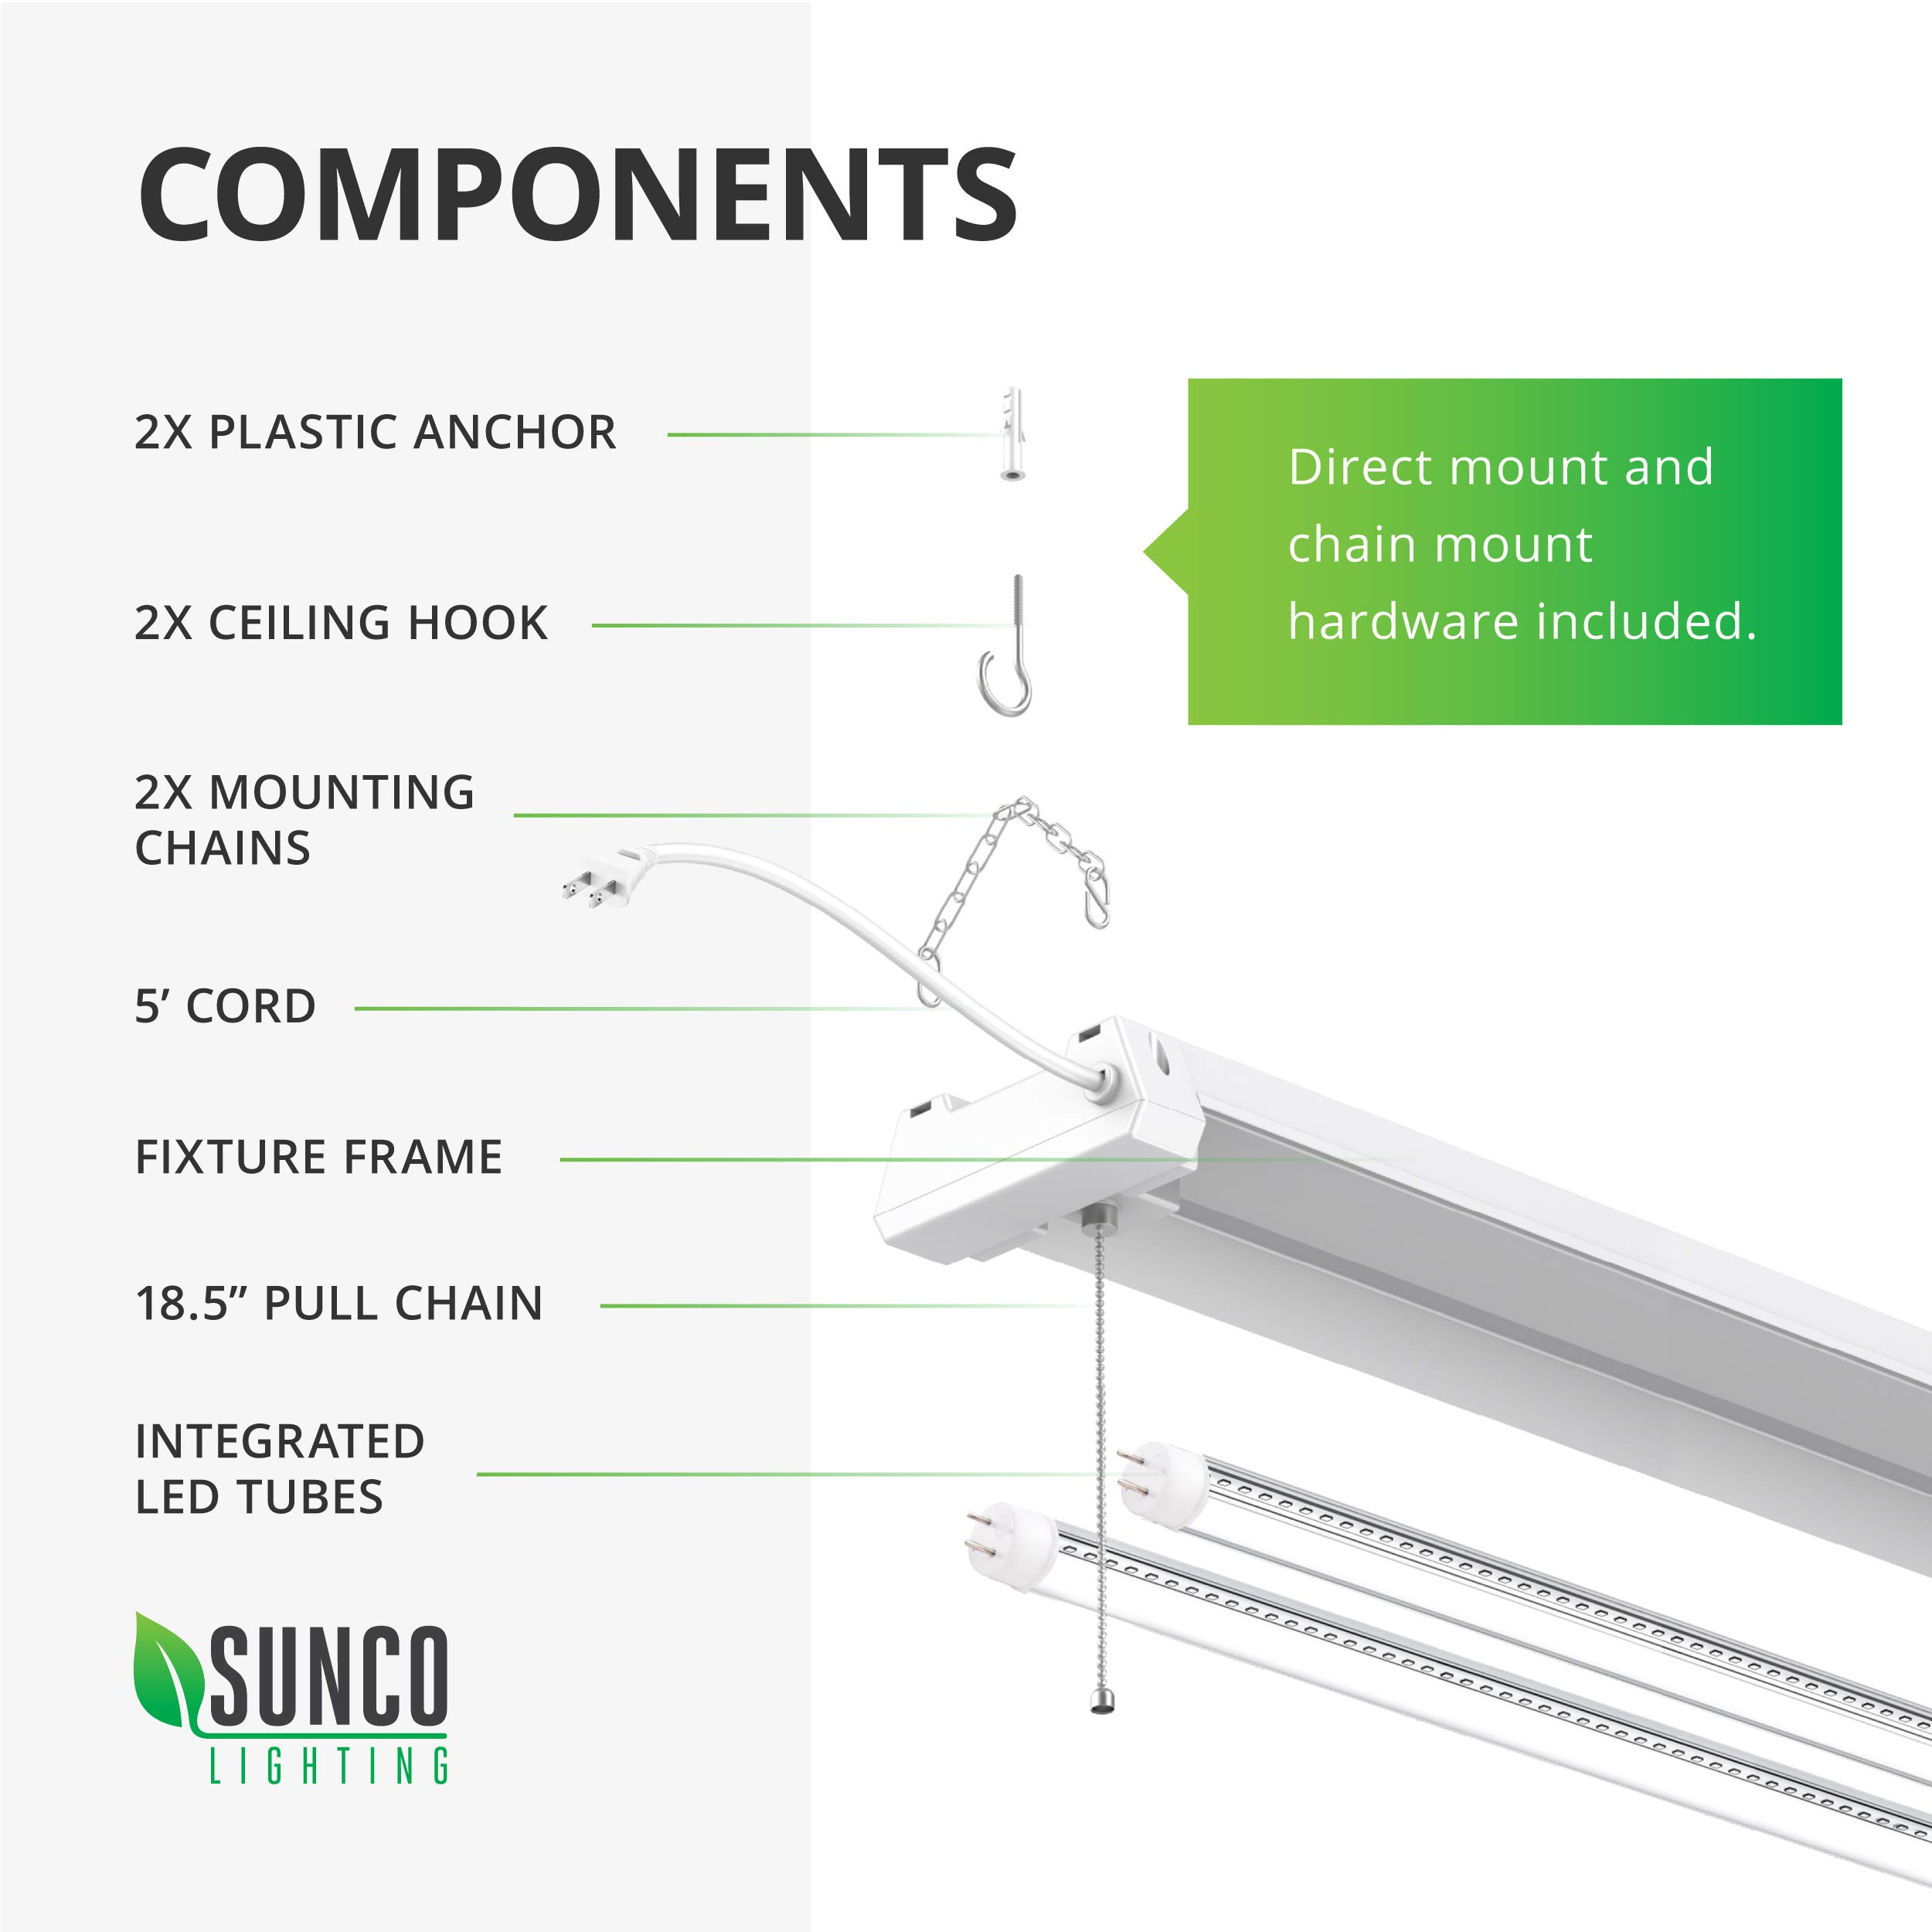 Sunco Lighting 12 Pack LED Utility Shop Light, 4 FT, Linkable Integrated Fixture, 40W=260W, 5000K Daylight, 4500 LM, Clear Lens, Surface/Suspension Mount, Pull Chain, Garage - ETL, Energy Star by Sunco Lighting (Image #7)